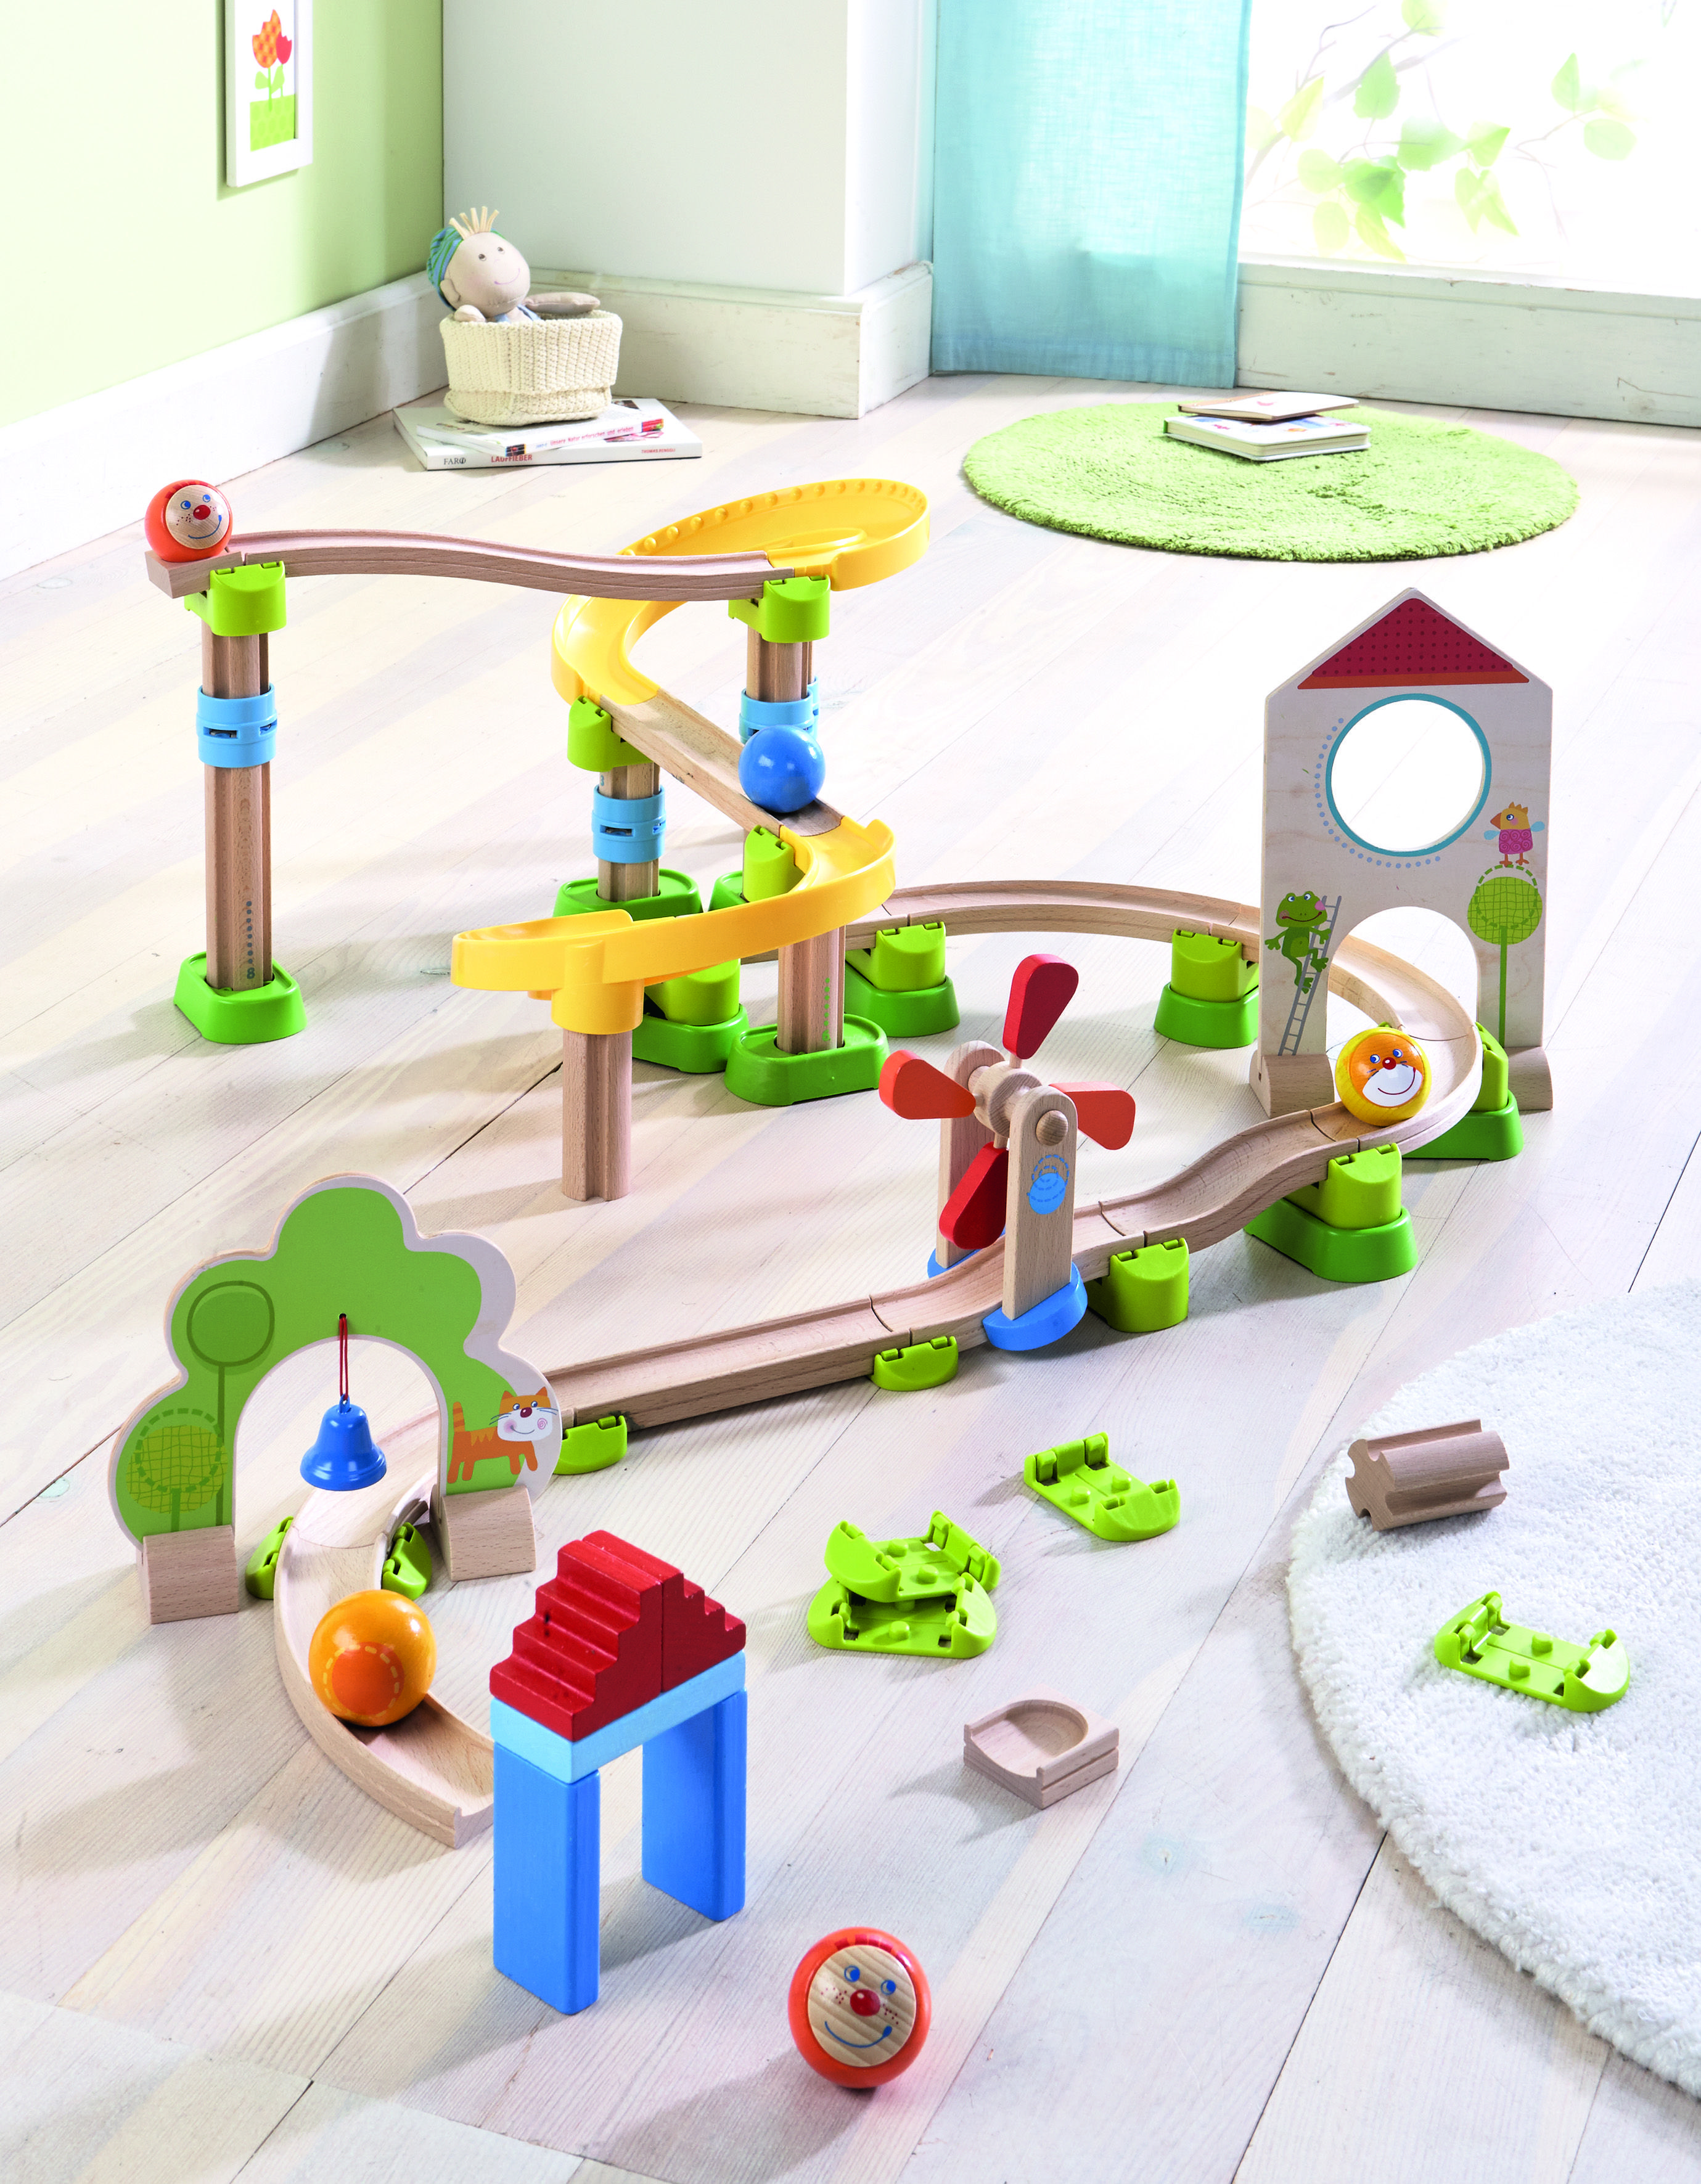 Haba Rollerby ball tracks suitable from just 2 years of age and challenging enough for 8 year olds. This exciting range of ball tracks by Haba is packed with mesmerising features and fun.